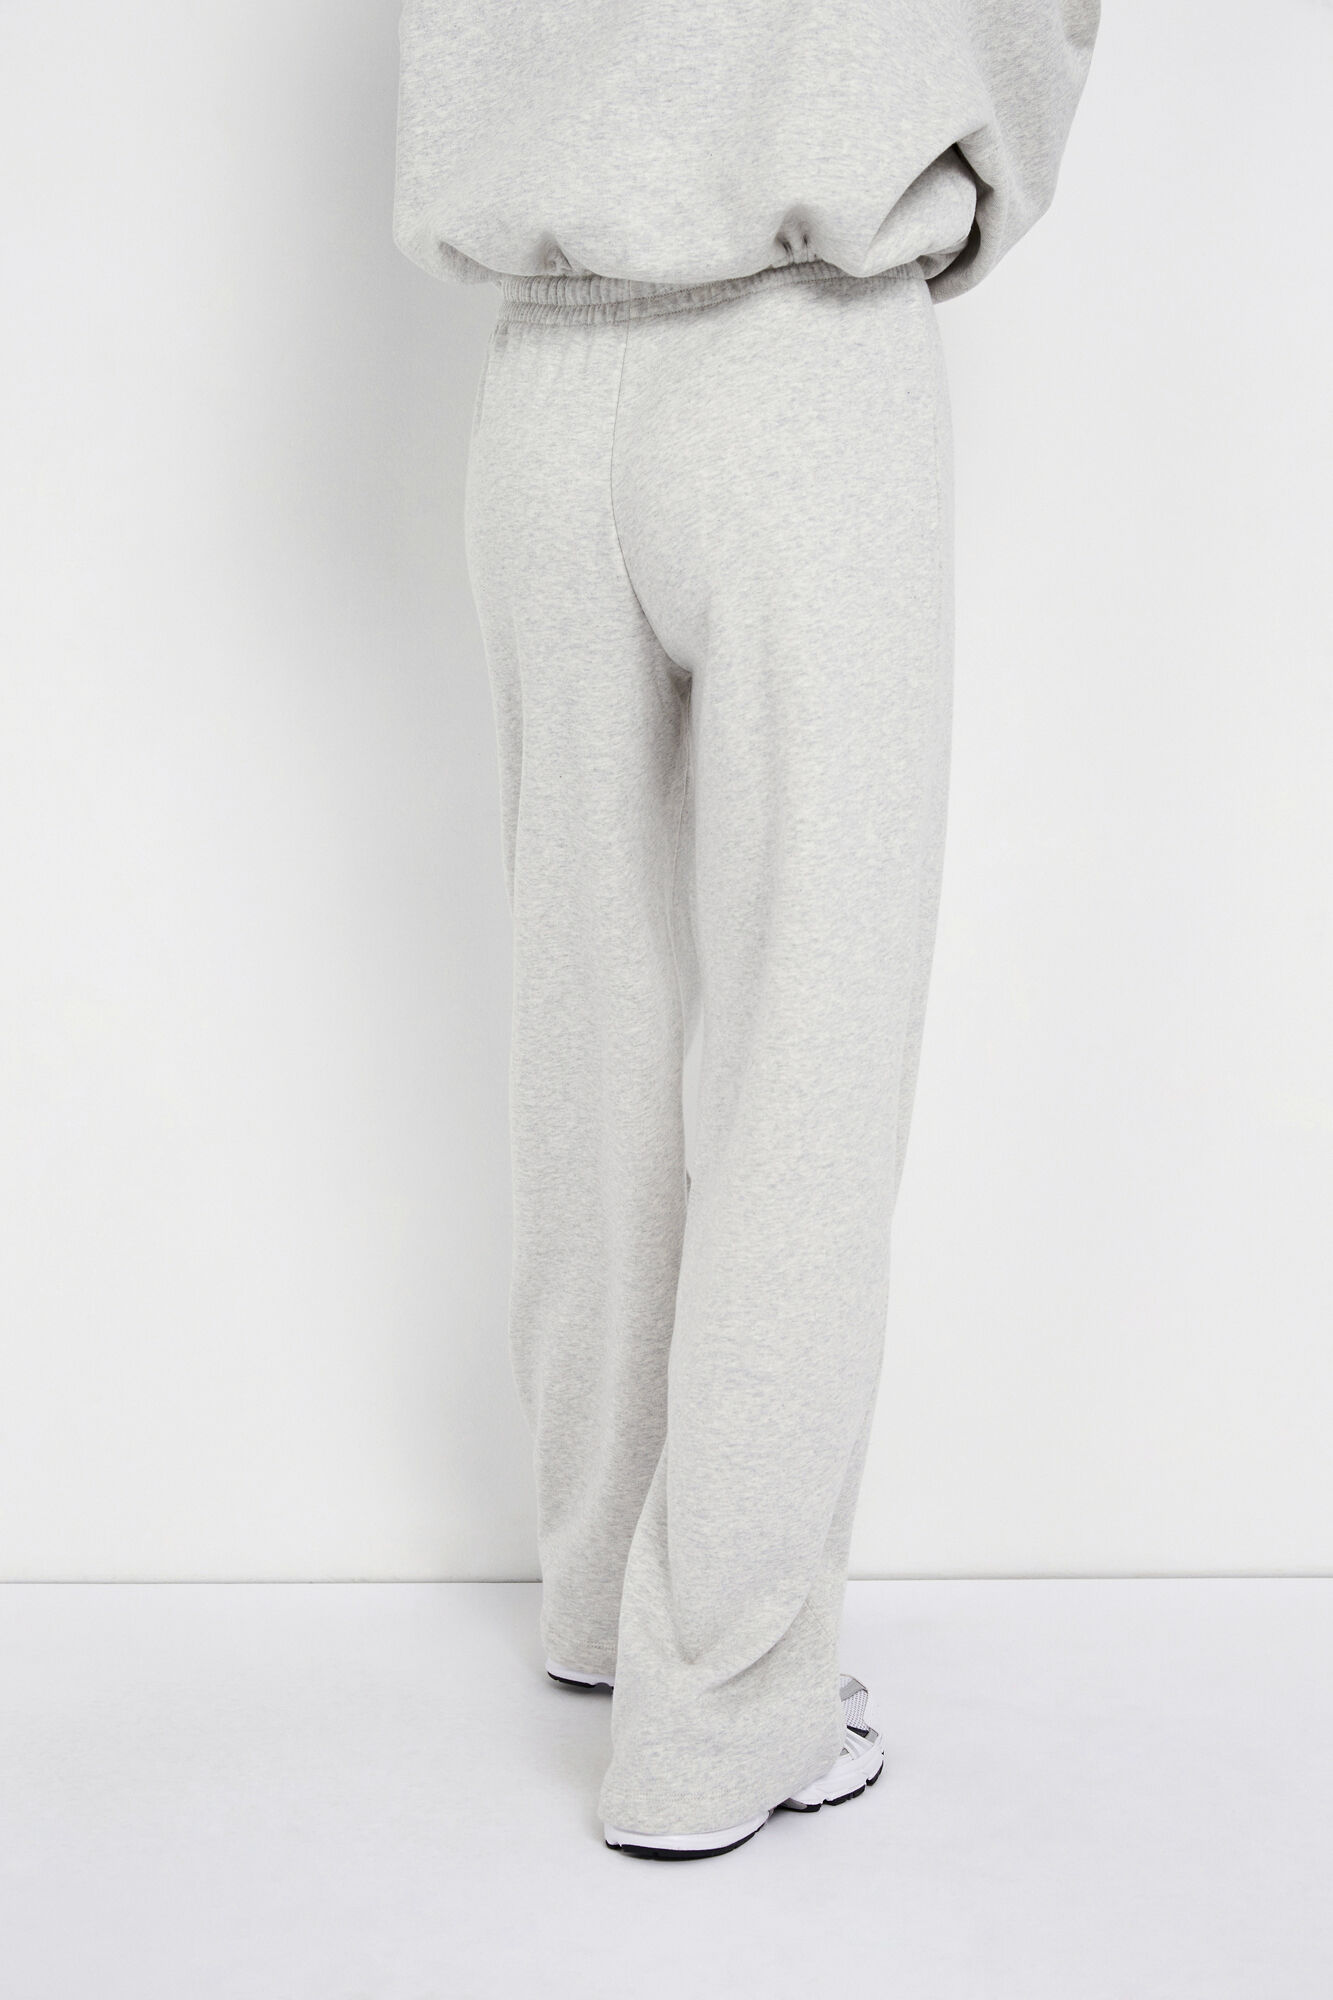 ENWALTER PANTS, LIGHT GREY MEL.